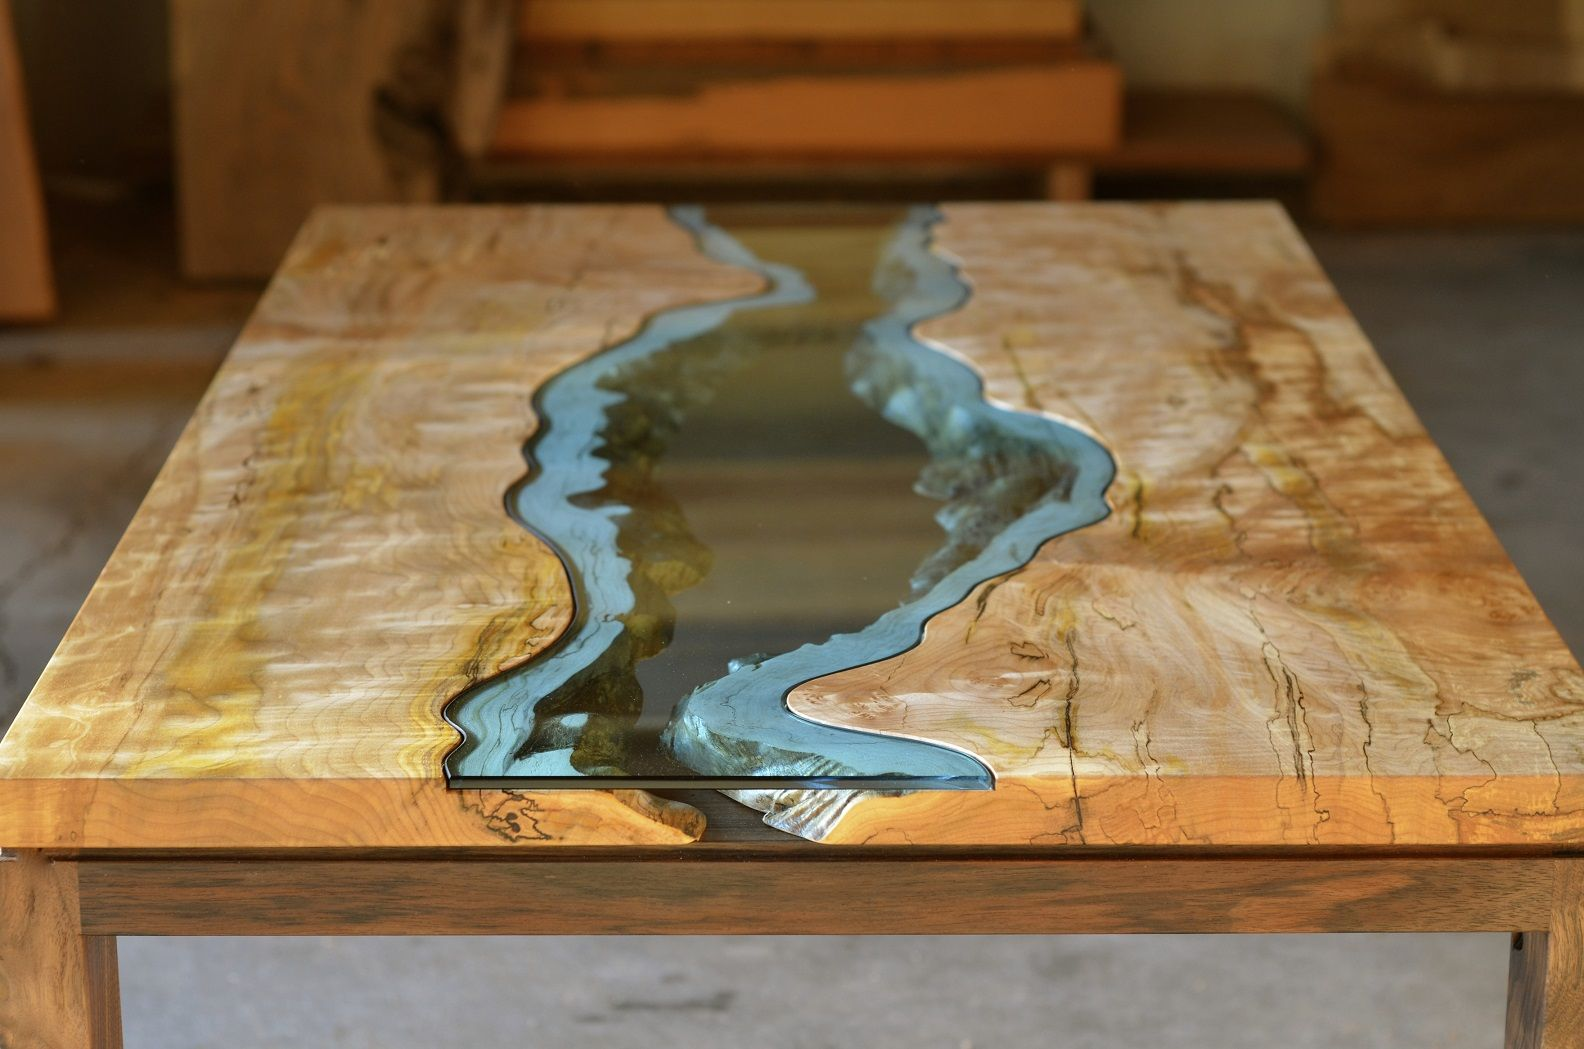 Furniture Designer Greg Klassen Created These Reclaimed Wood Tables With  Embedded Rivers And Lakes To Remind Him Of The Pacific Northwest